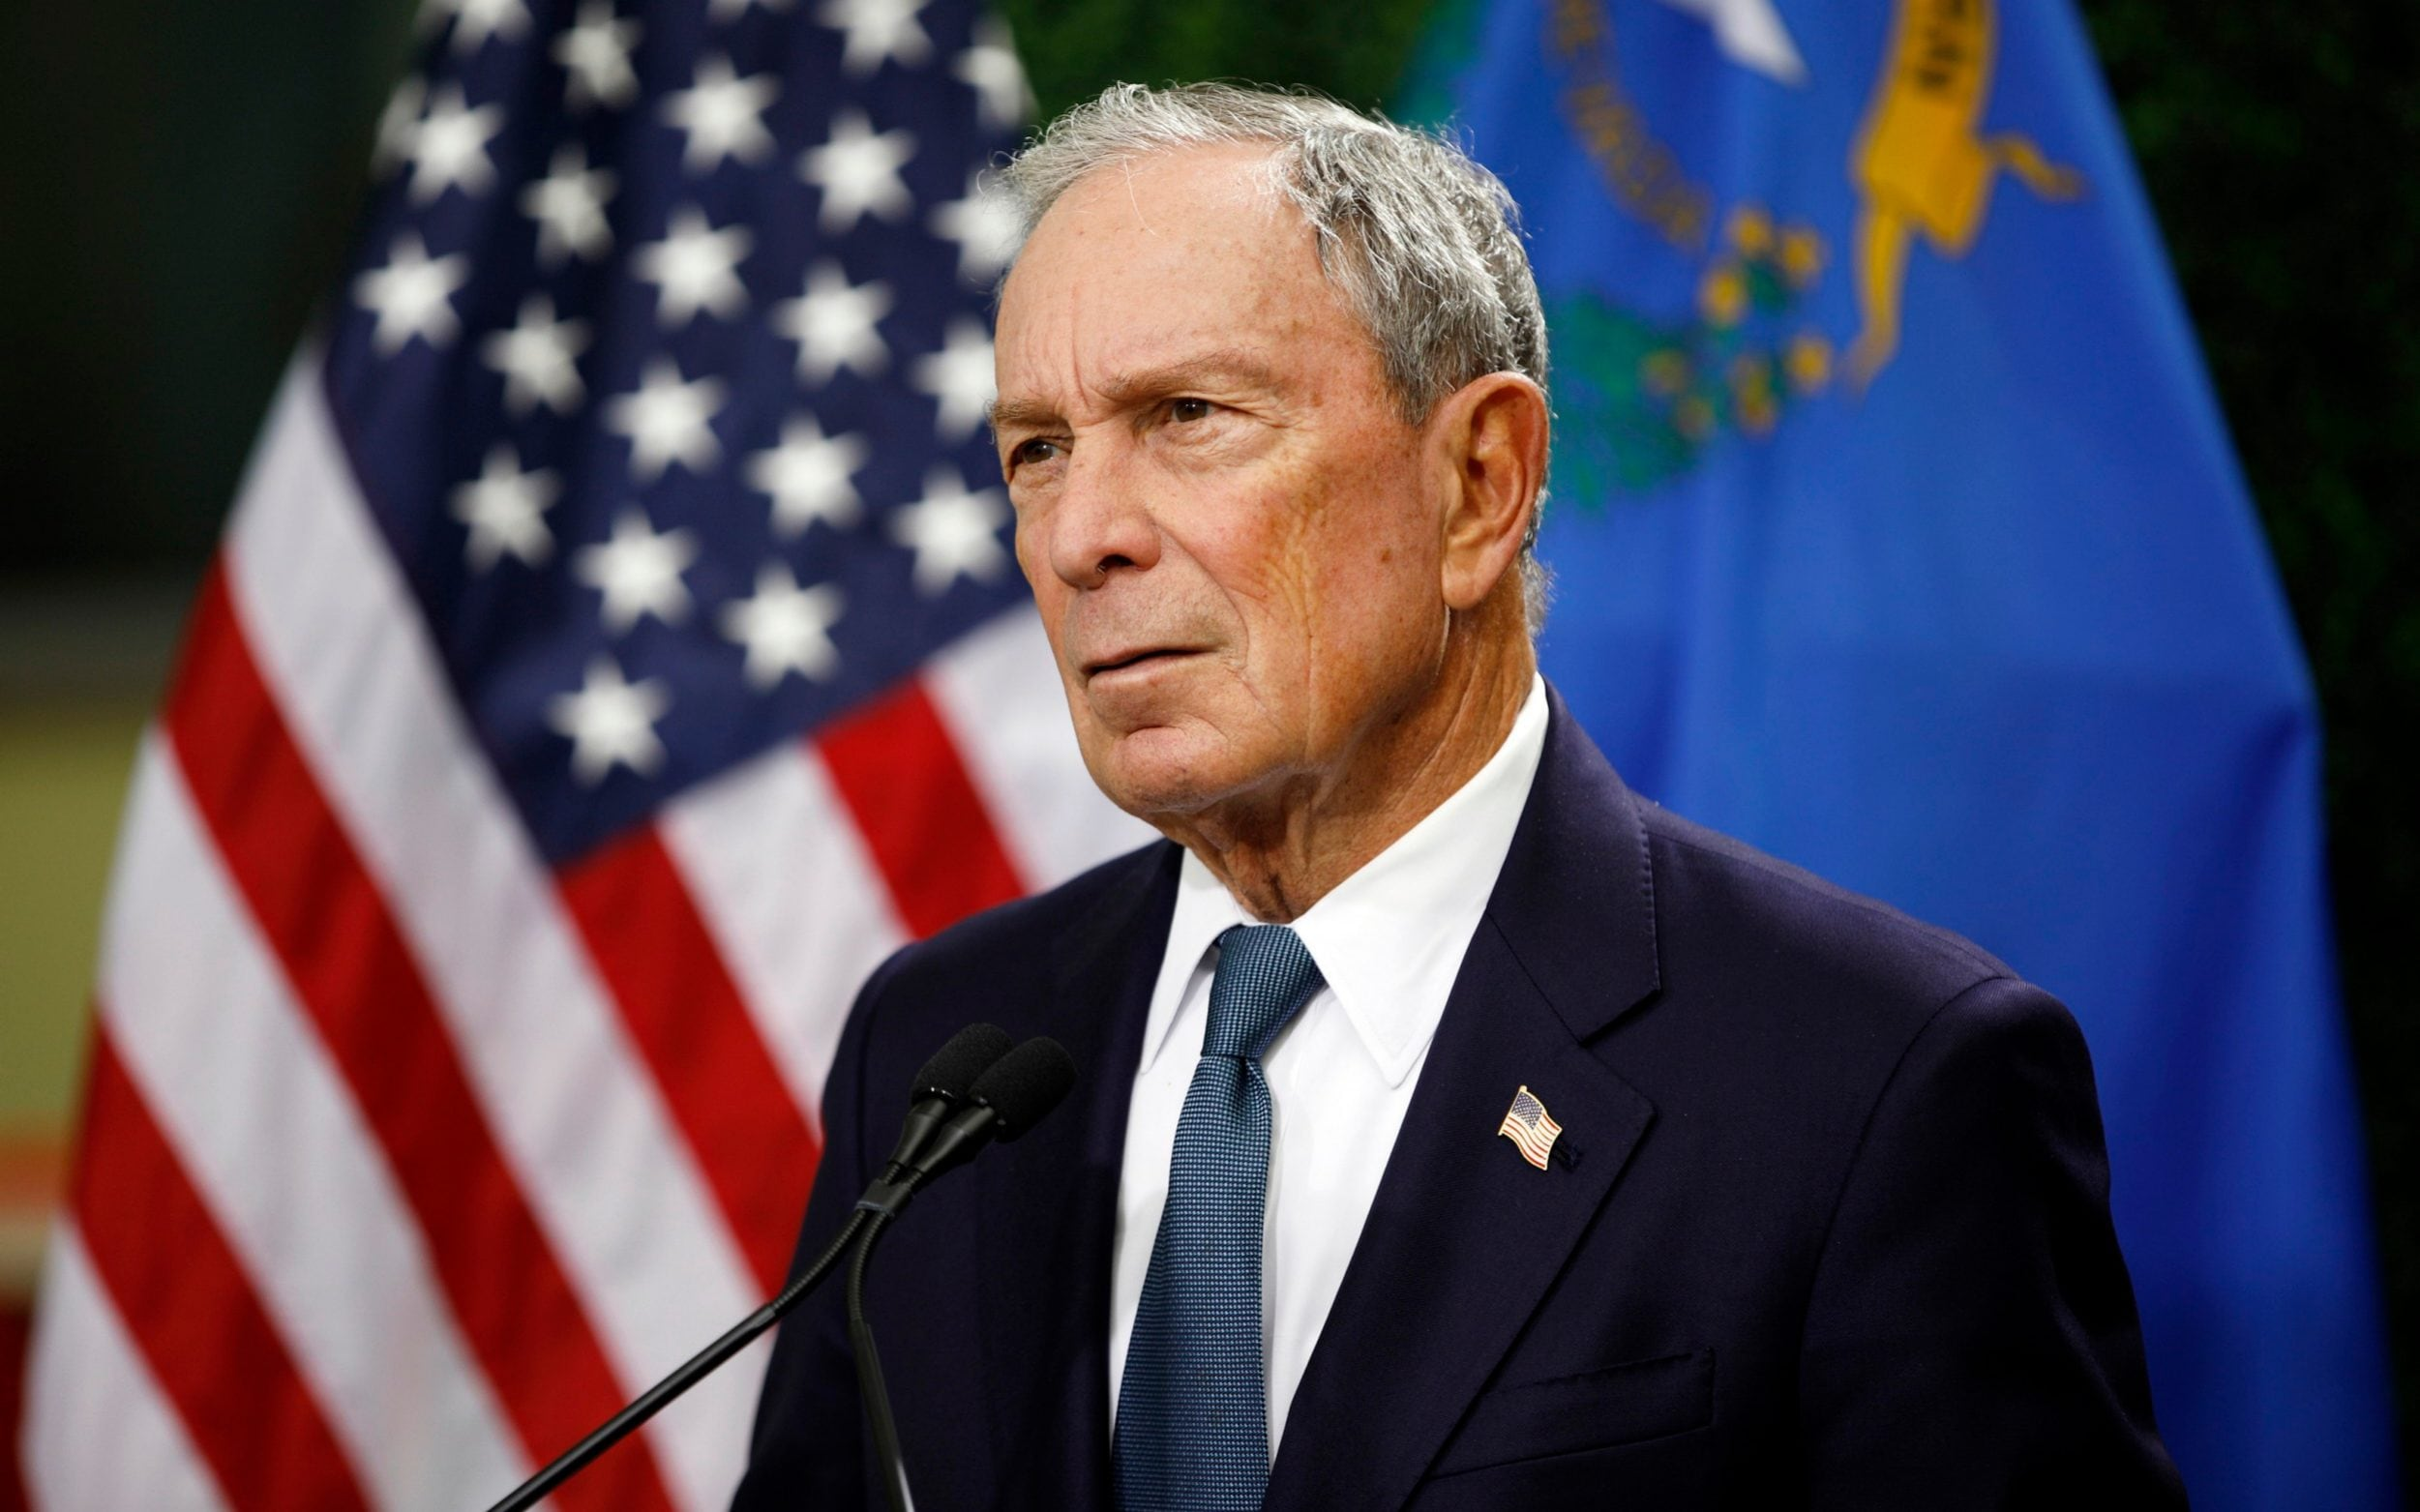 Michael Bloomberg expected to enter Democratic primary amid fears over rise of the Left